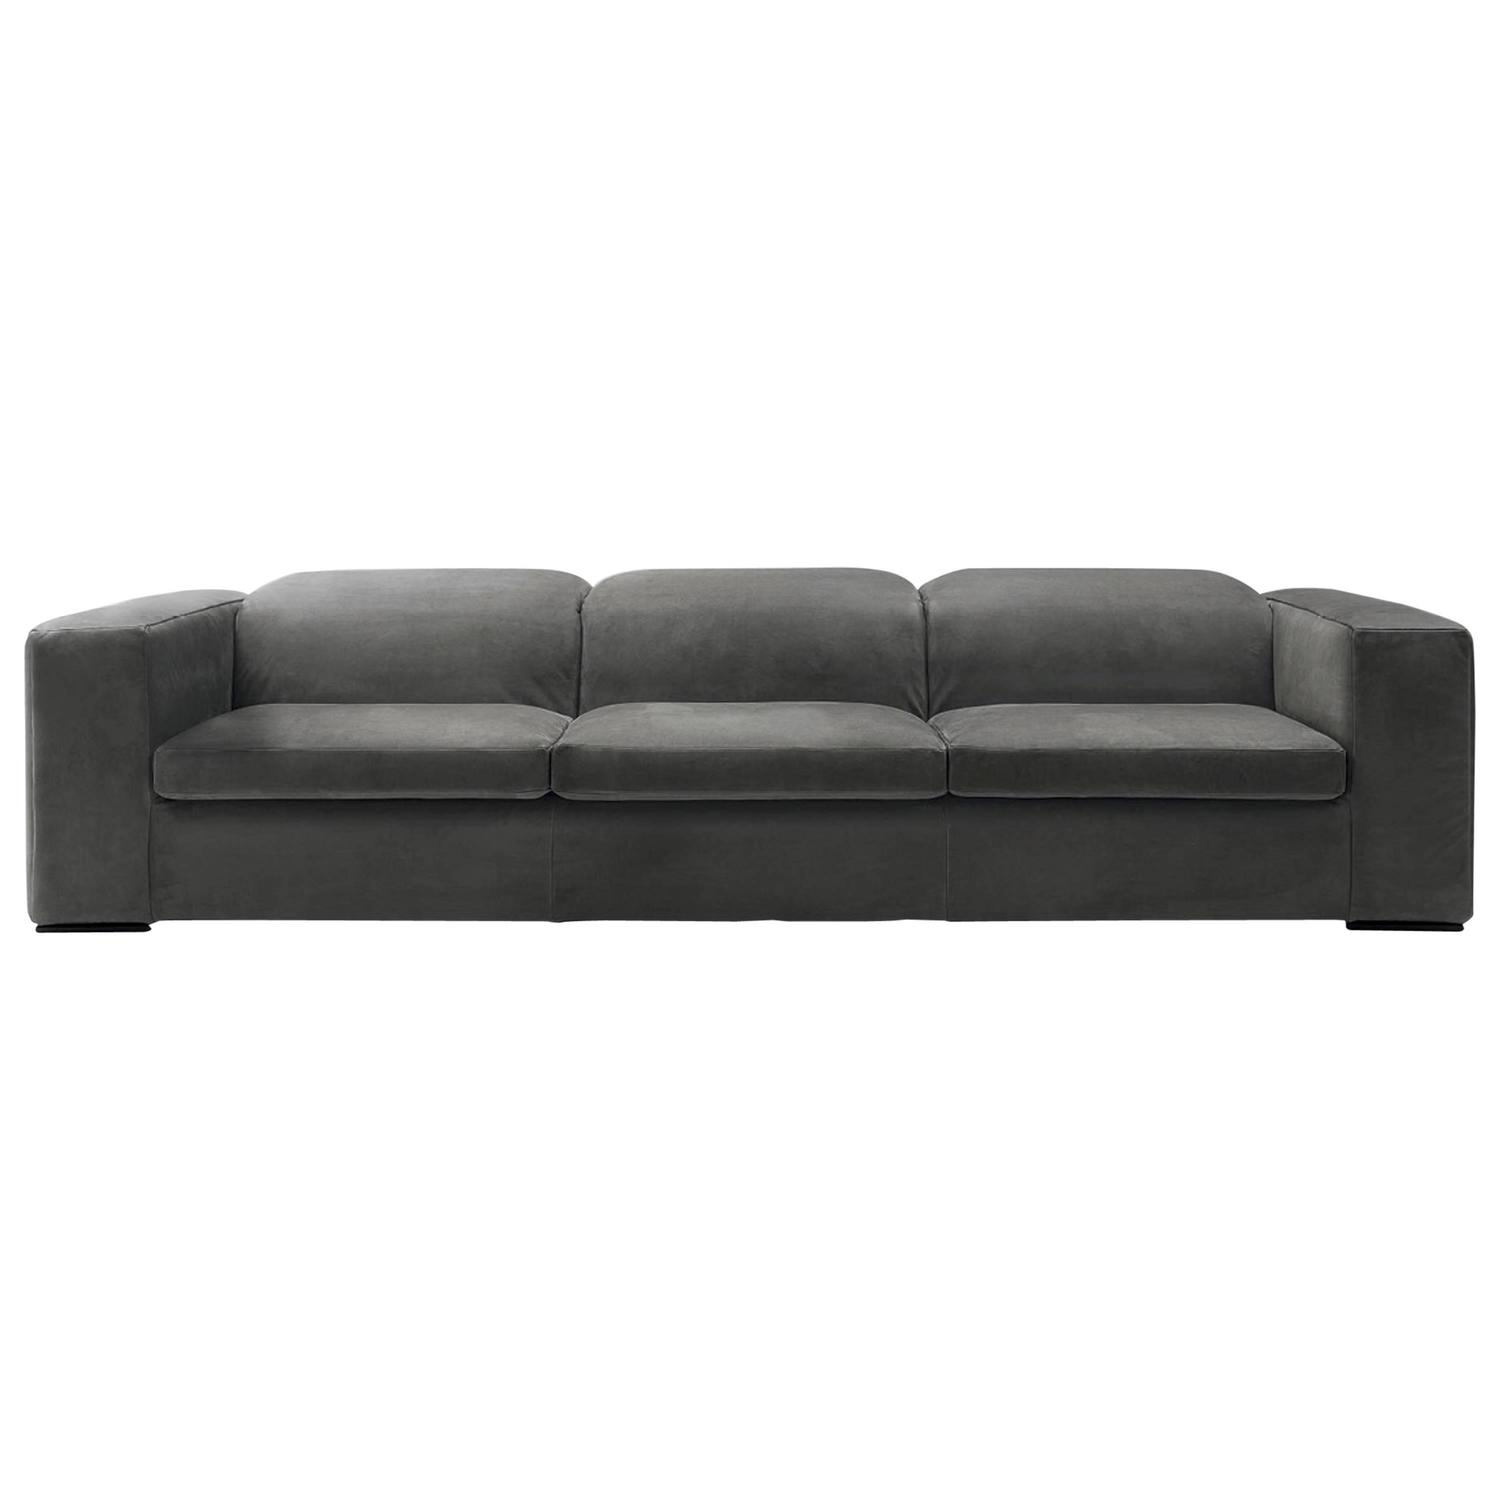 Modern Italian Sectional Sofa With Reclining Back Cushions